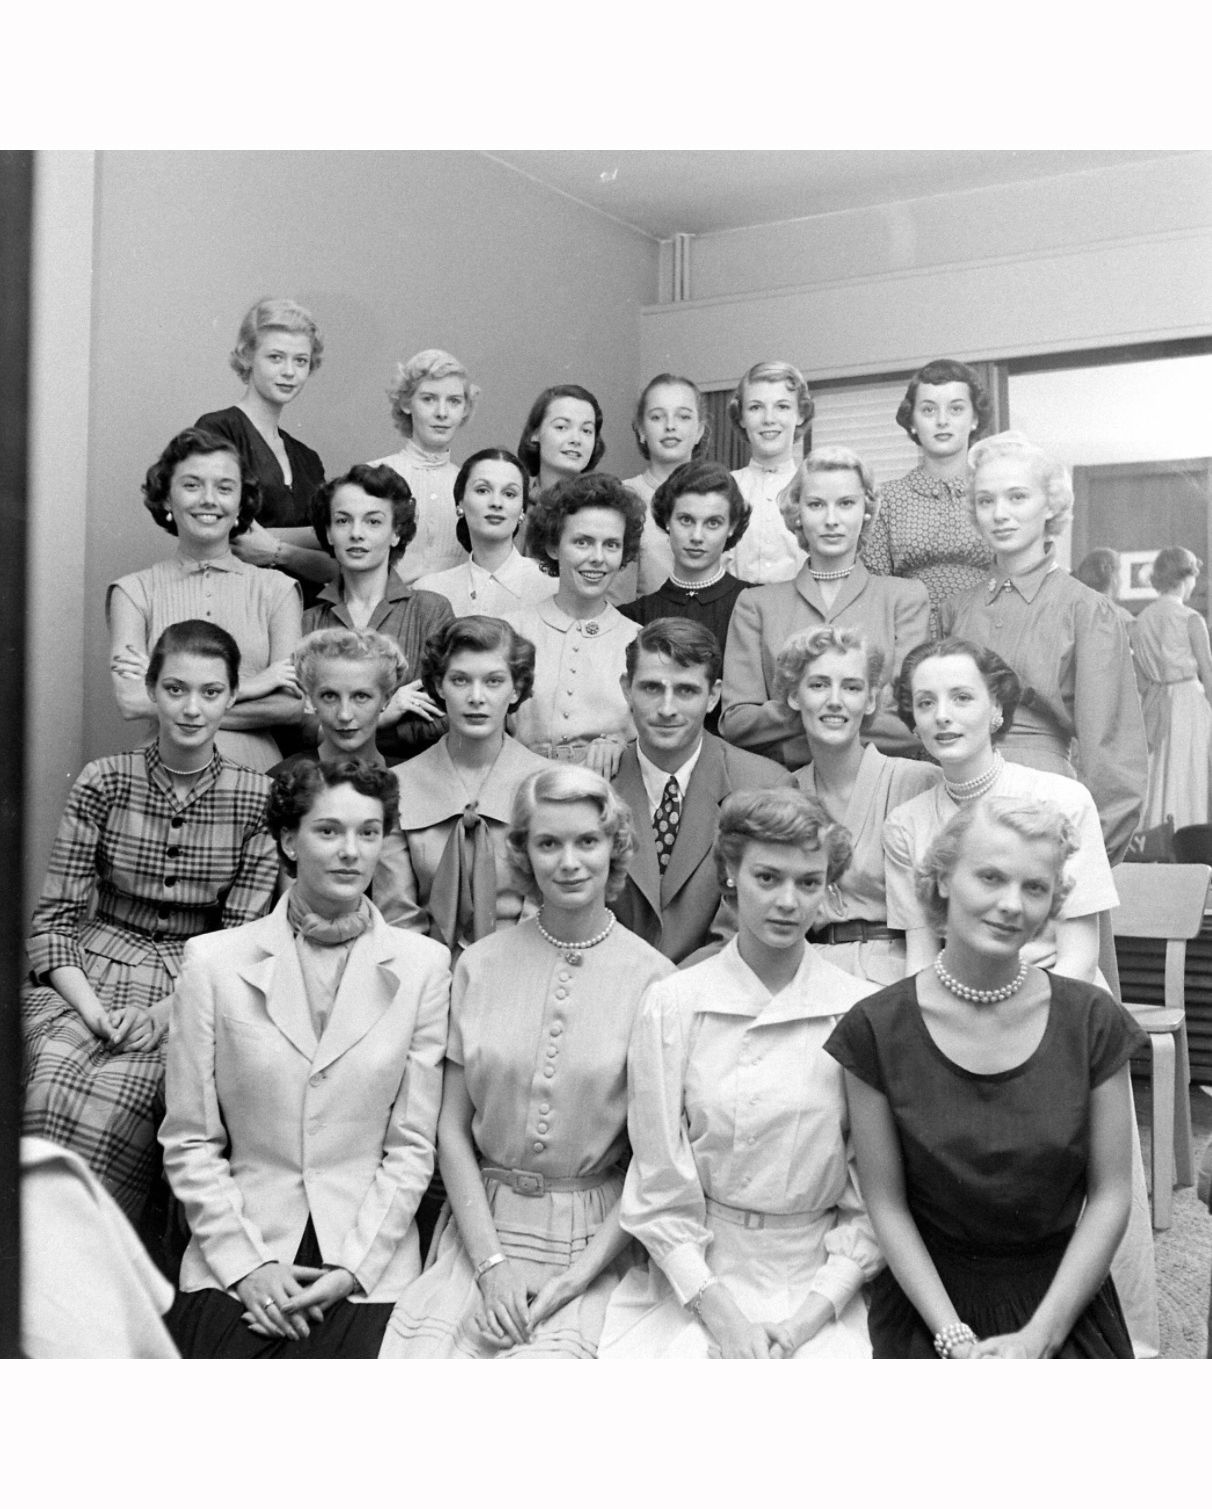 The Ford Model Agency, Joan Pedersen 2nd girl from the right, on third row from the bottom, with choker necklace. Photo Nina Leen